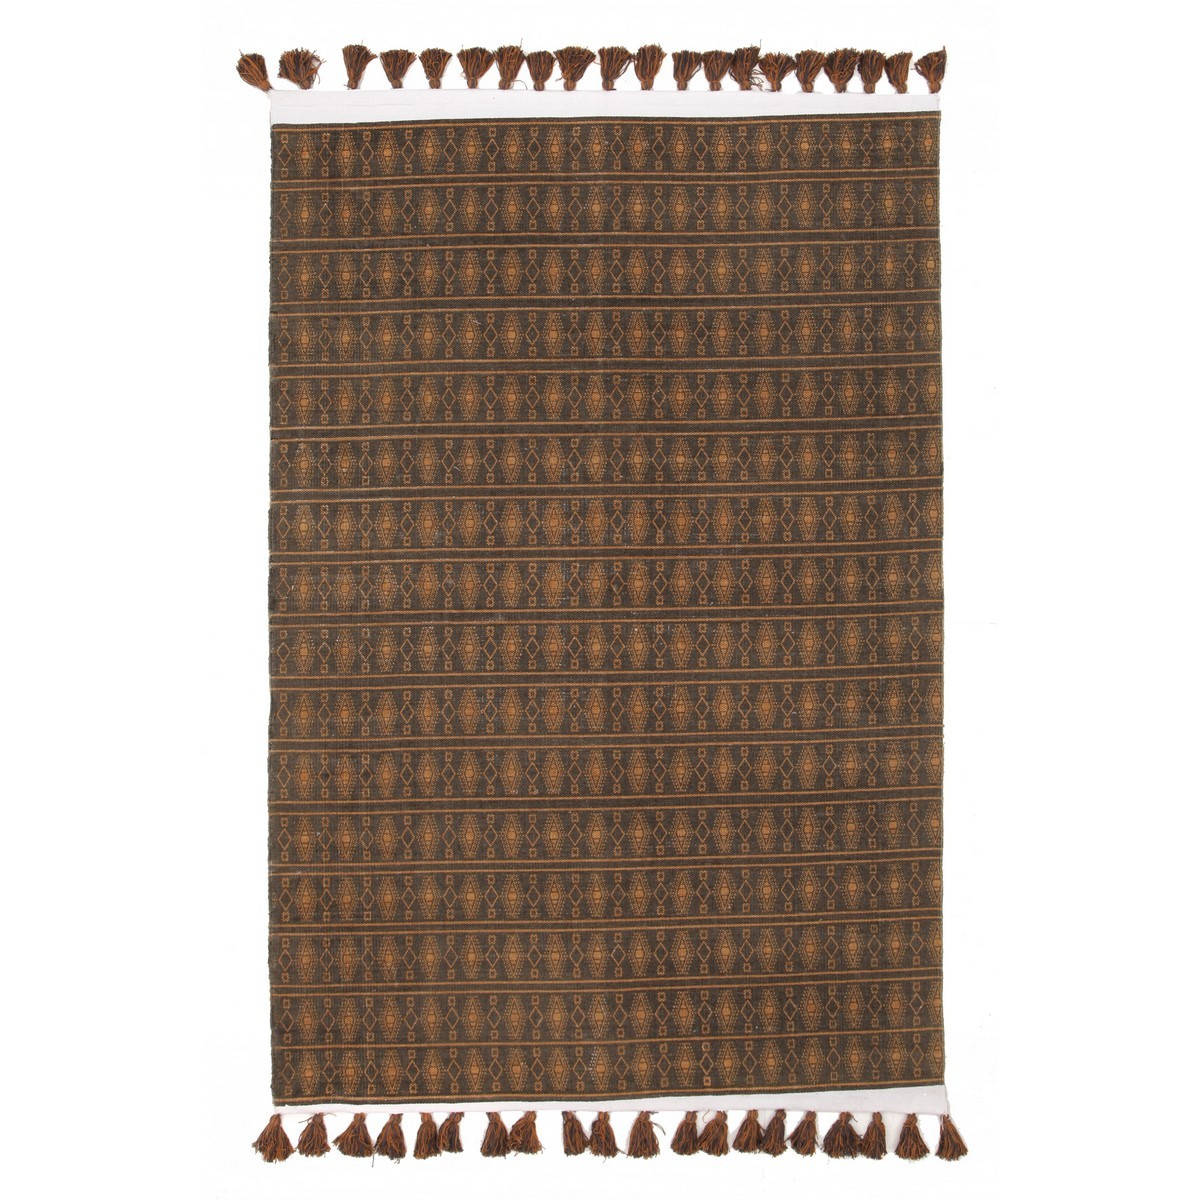 Gypsy Tribal Reversible Cotton Rug, 220x150cm